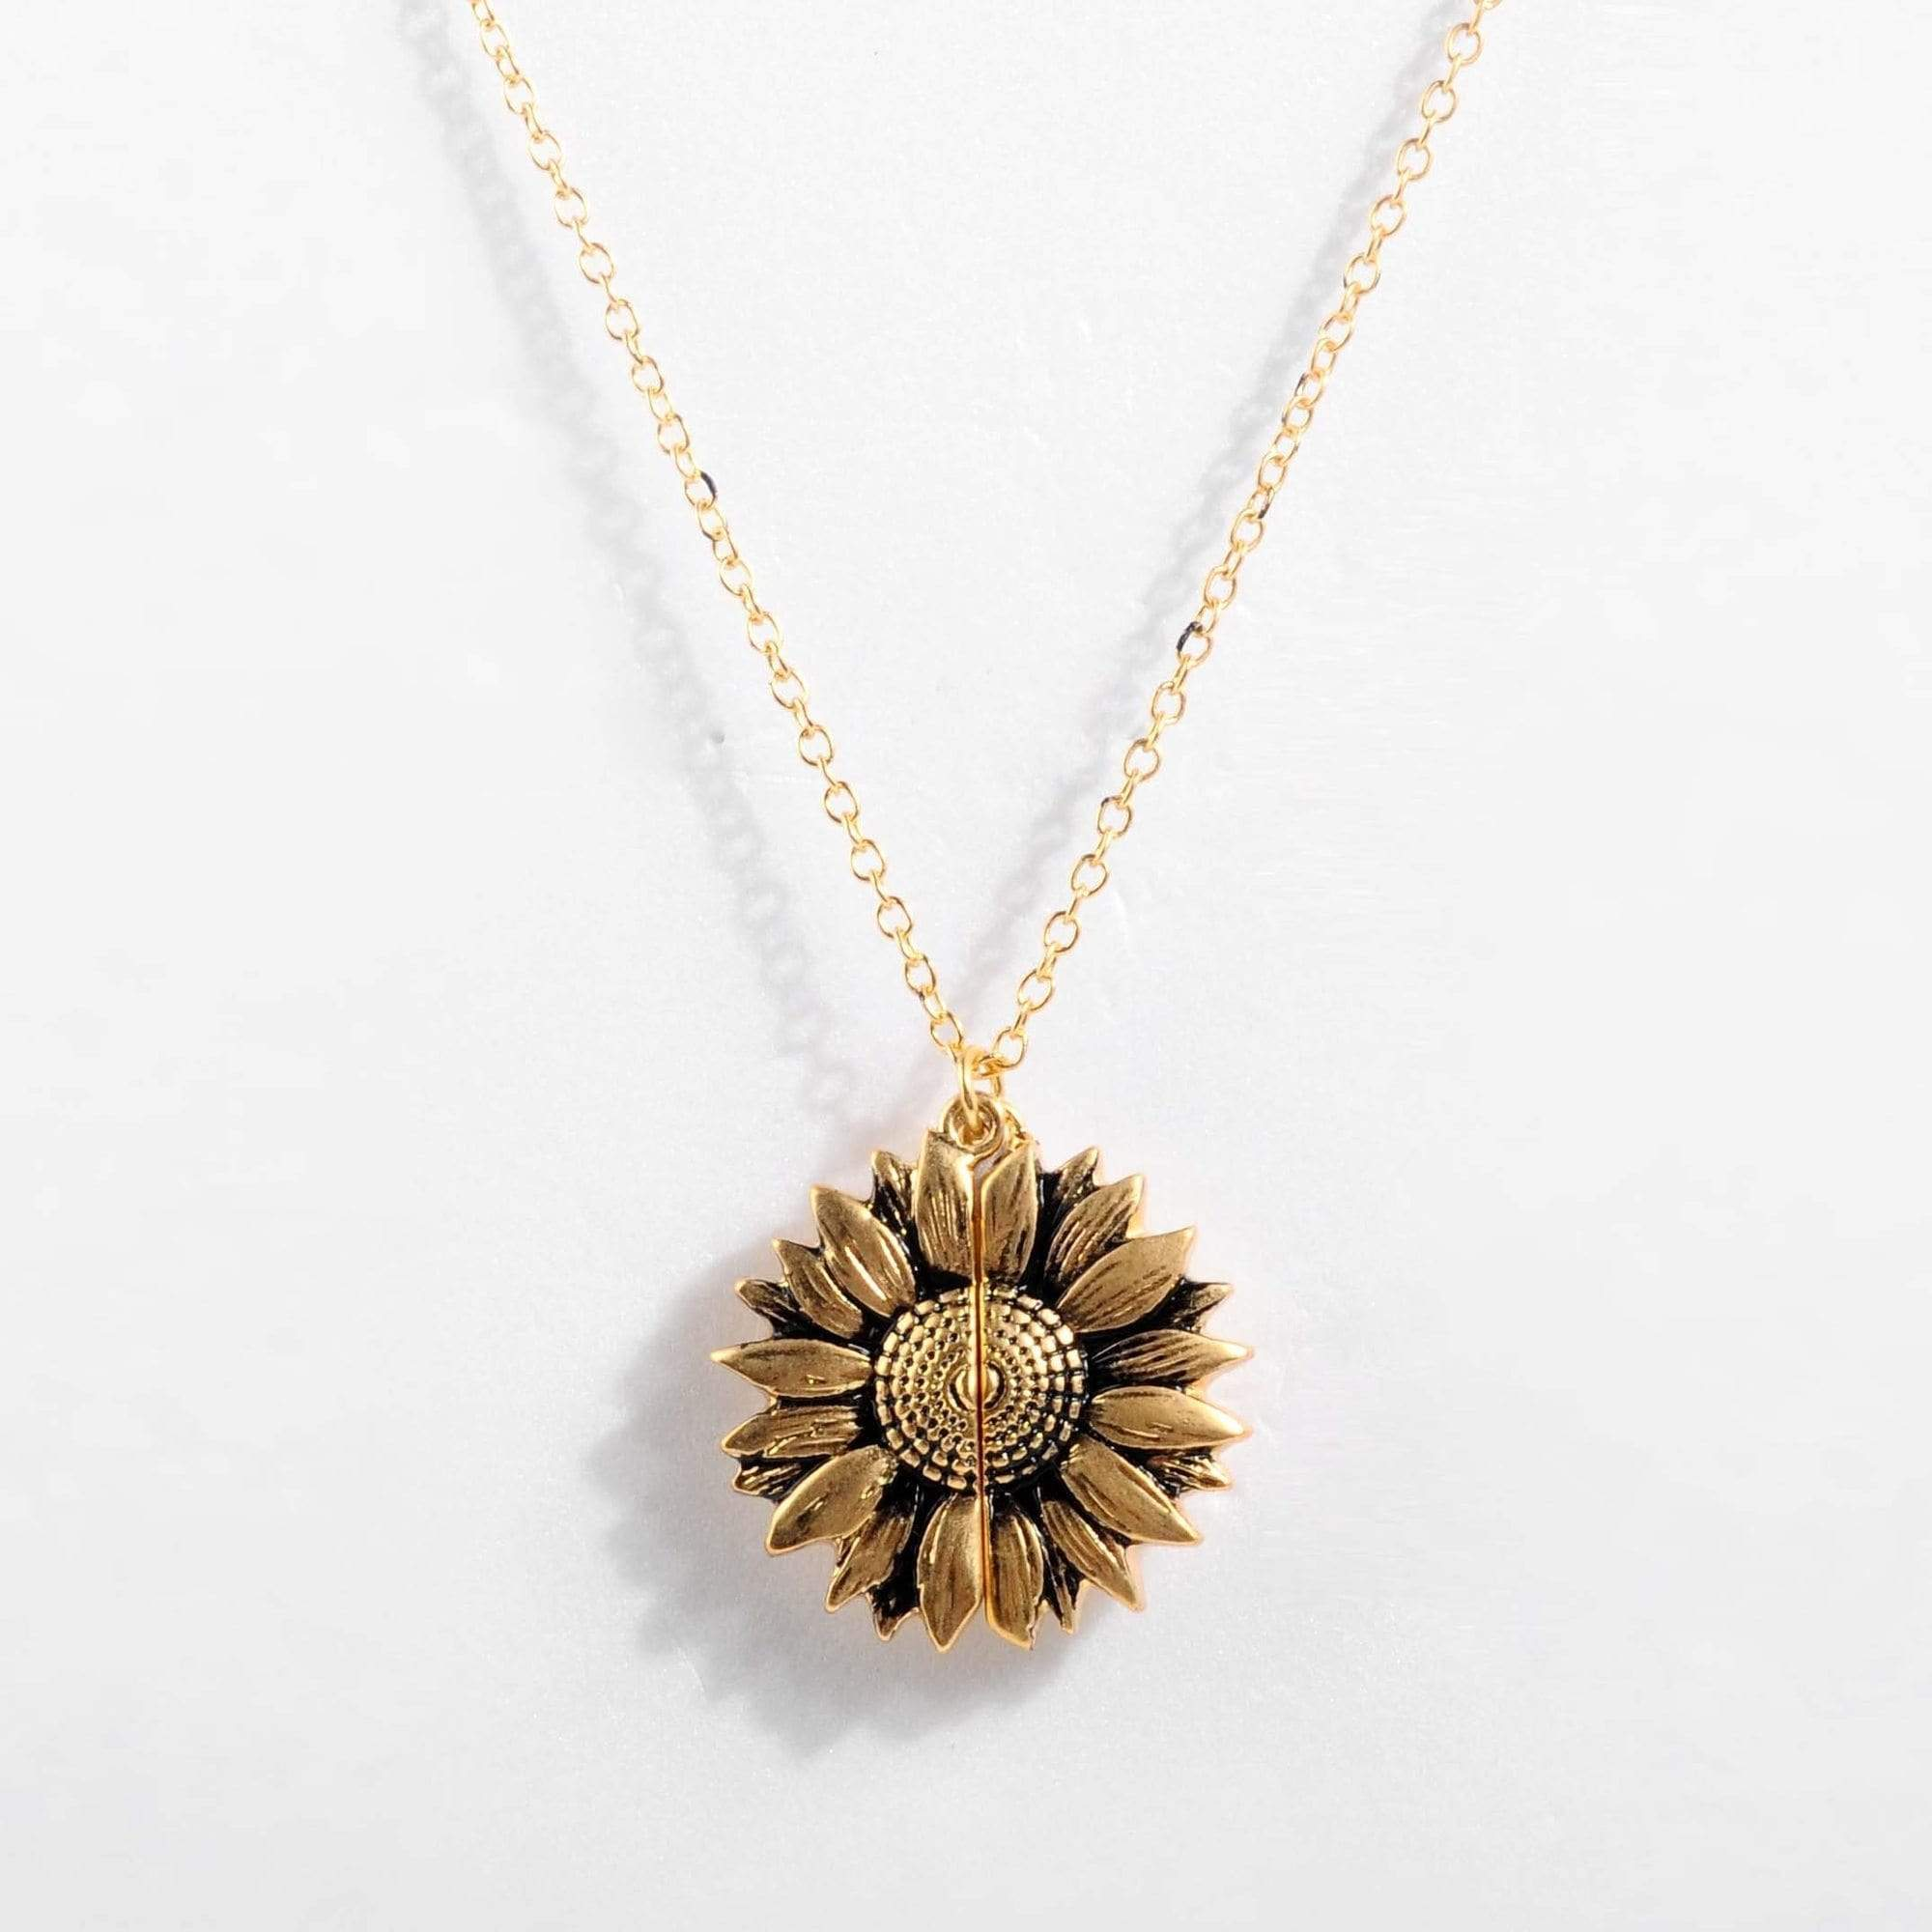 You Are My Sunshine Sunflower Necklace WickedAF gold